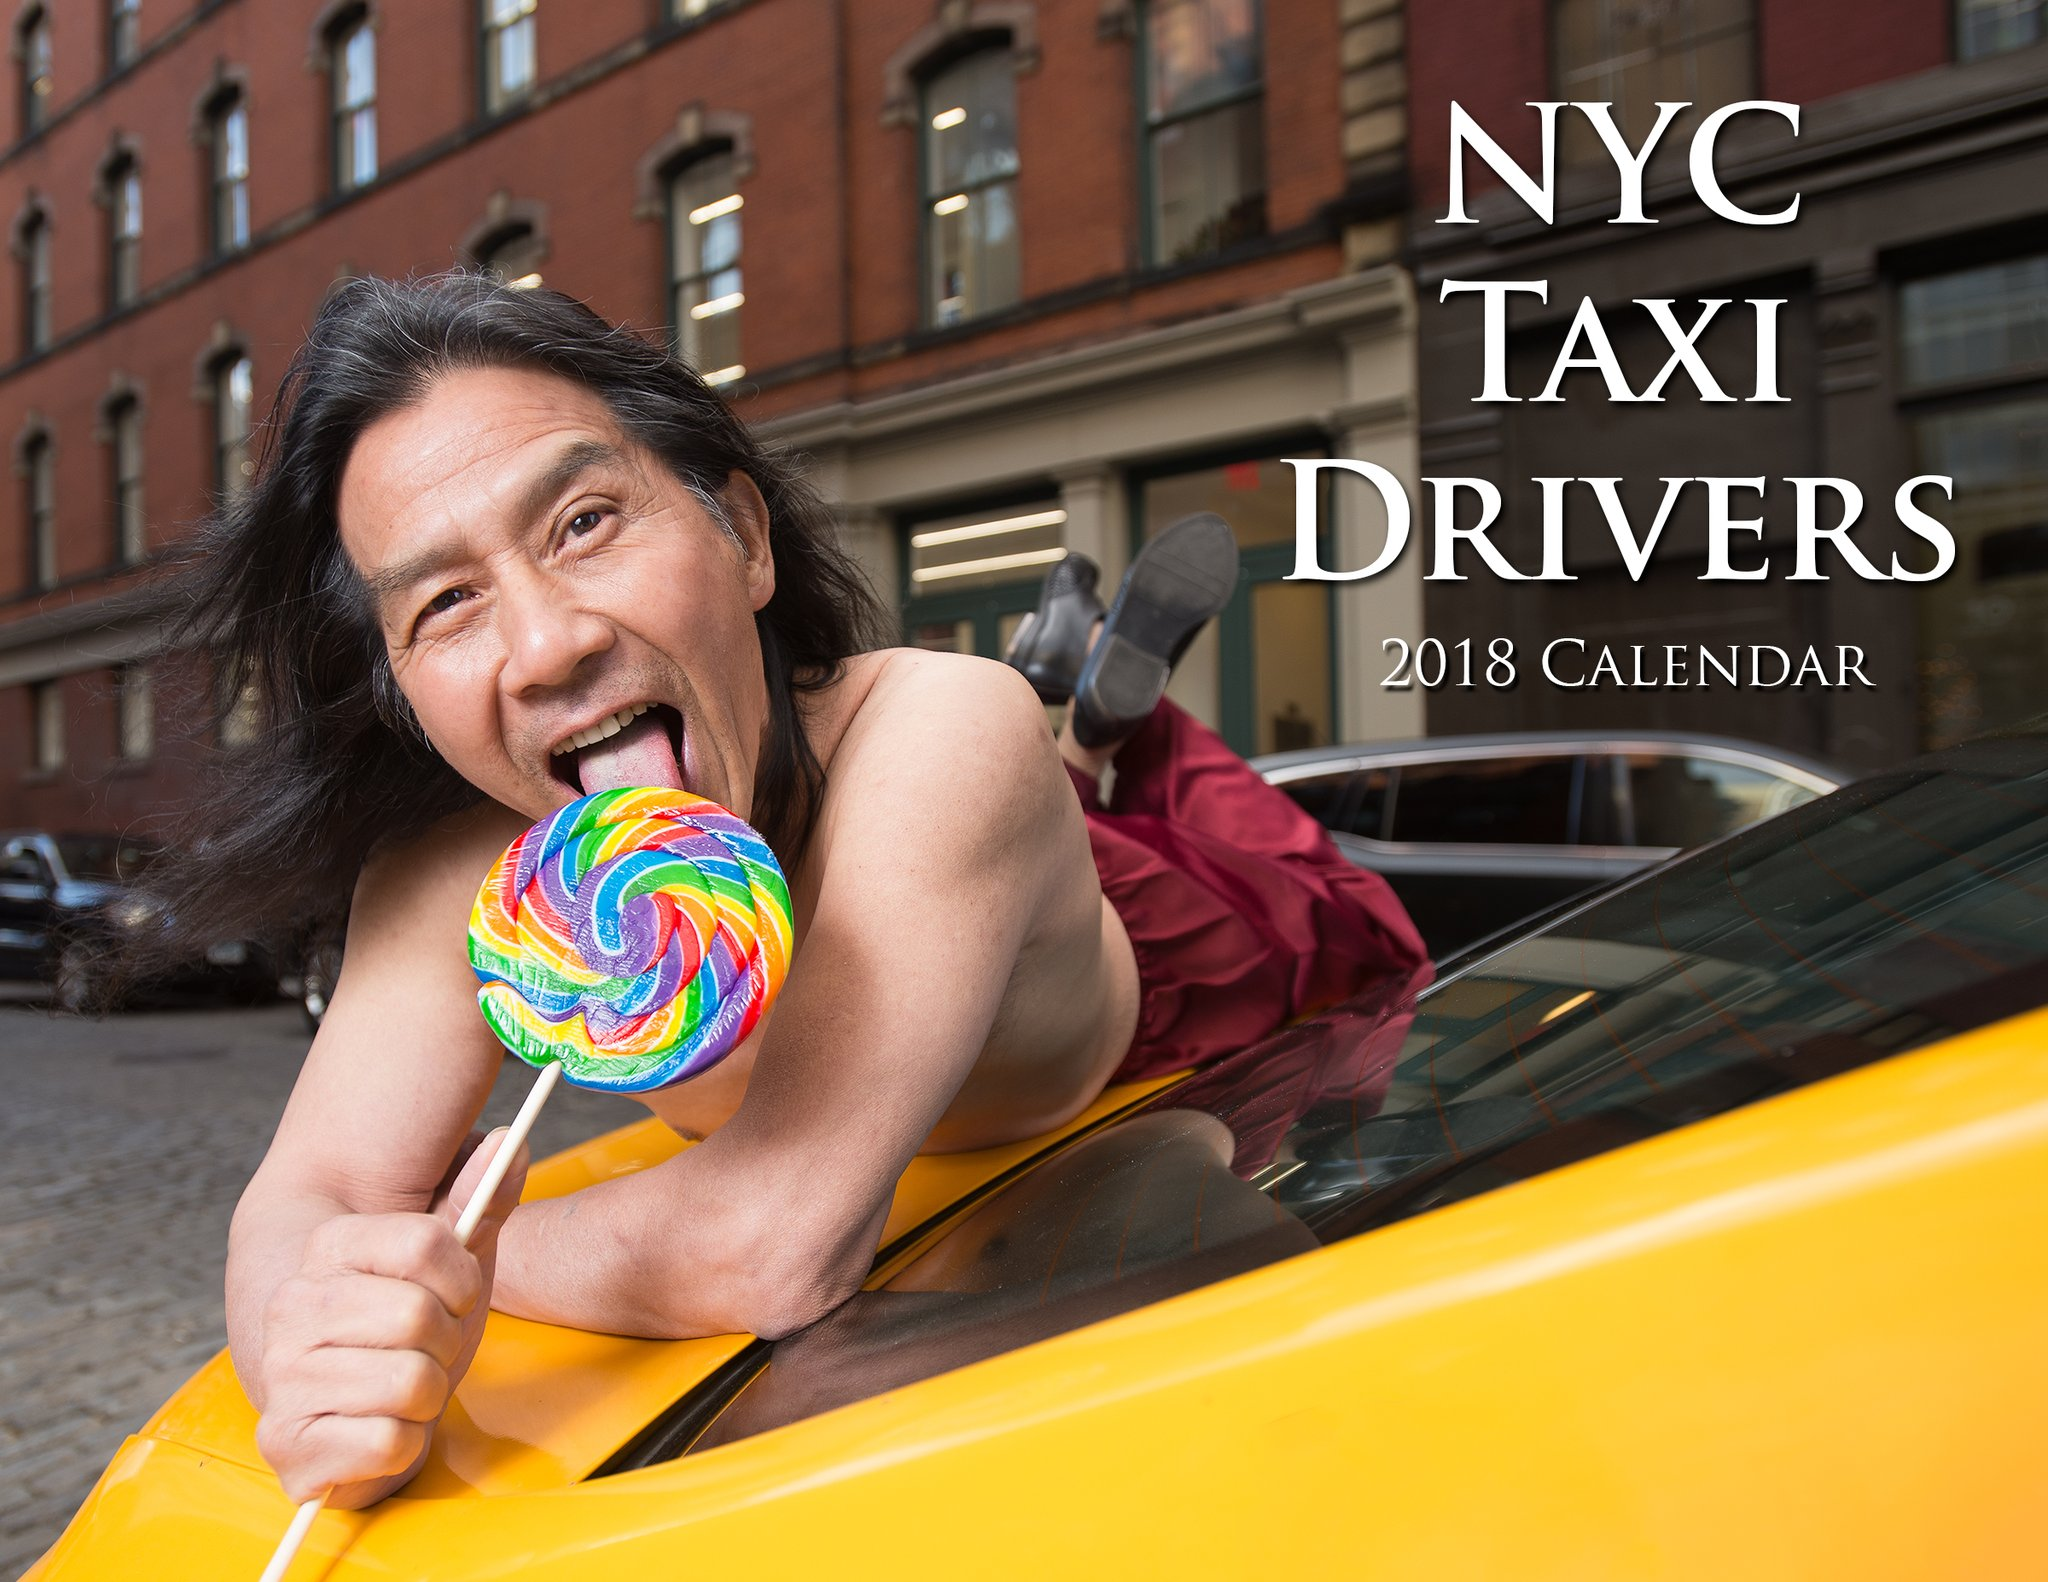 NYC yellow cab drivers pose for pin-up charity calendar